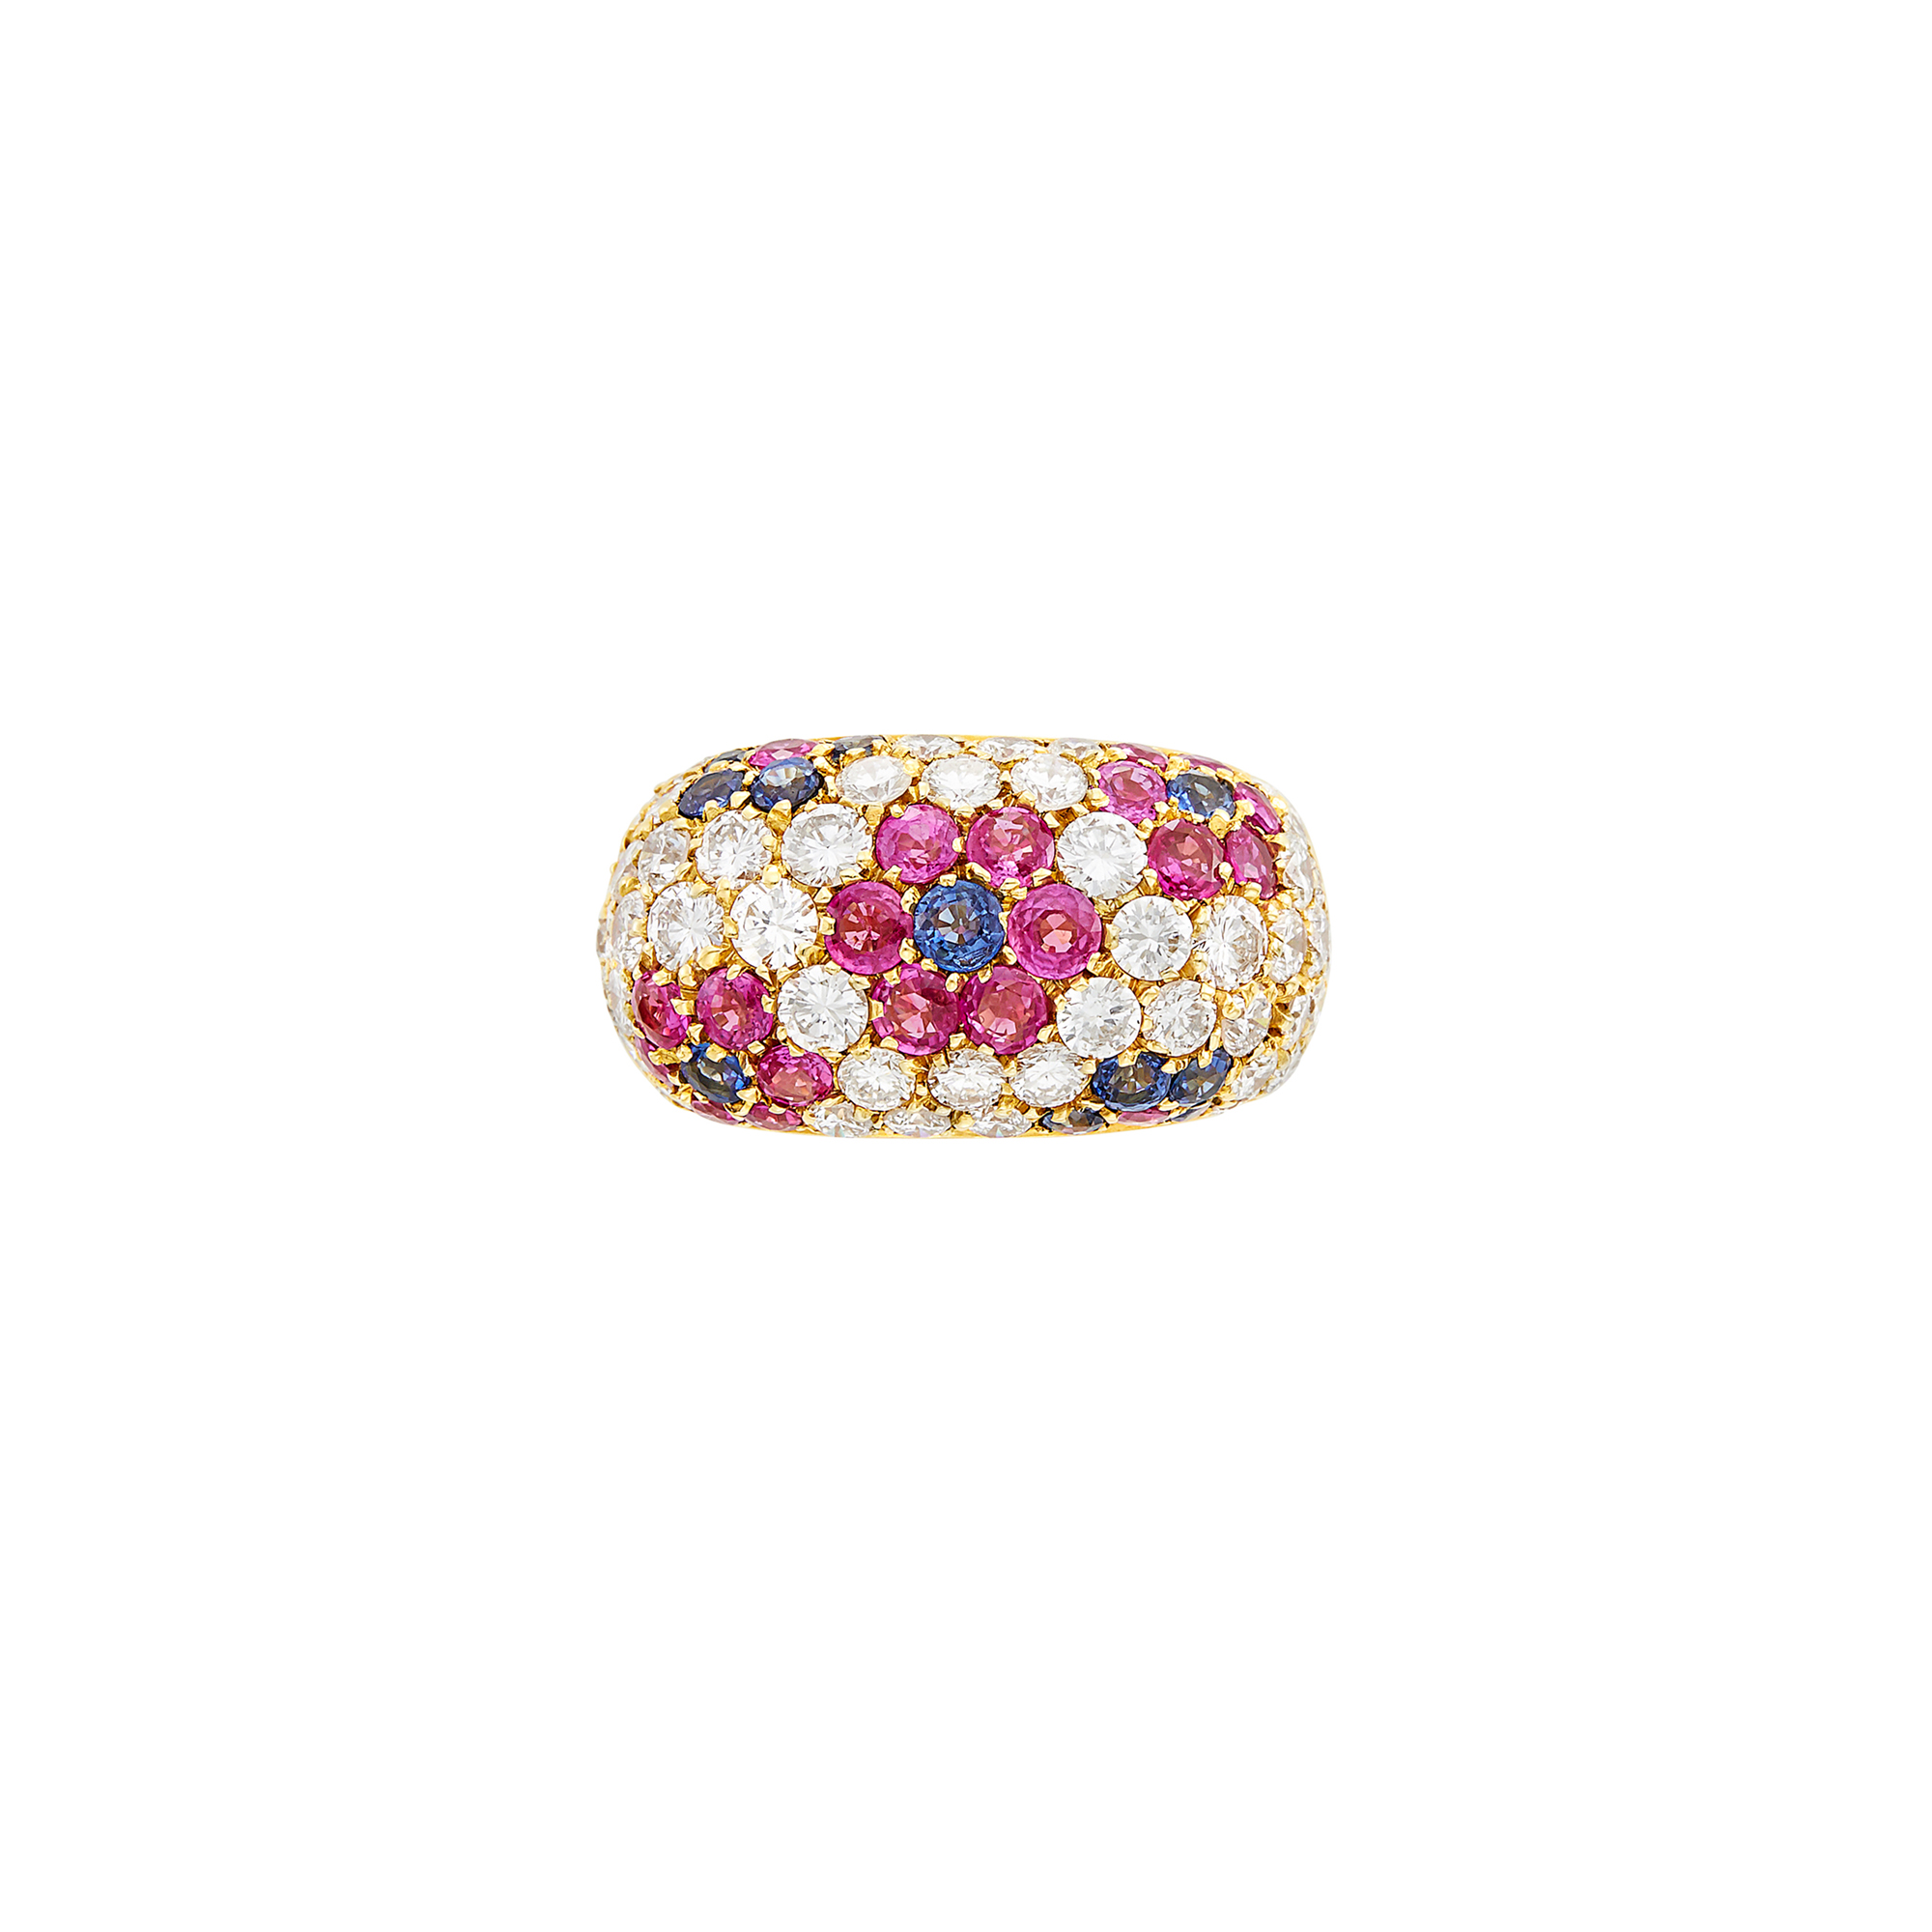 Lot image - Gold, Sapphire, Ruby and Diamond Floret Ring